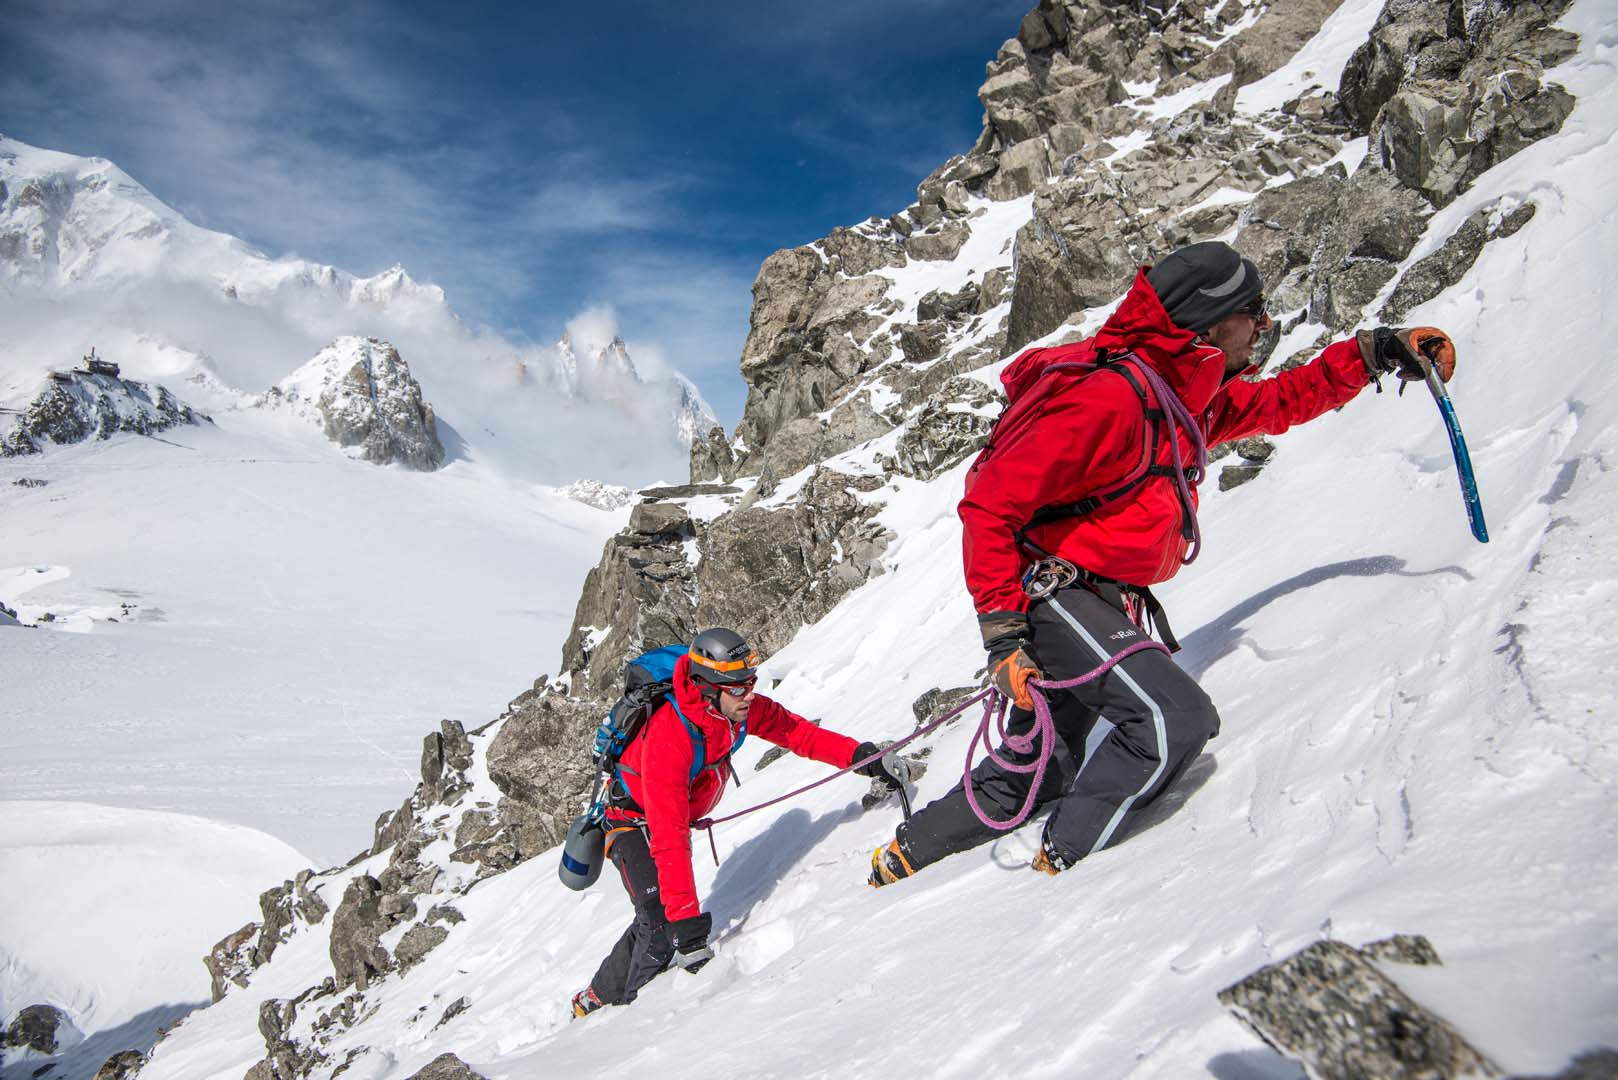 mountain climbing expeditions challenged - HD1618×1080